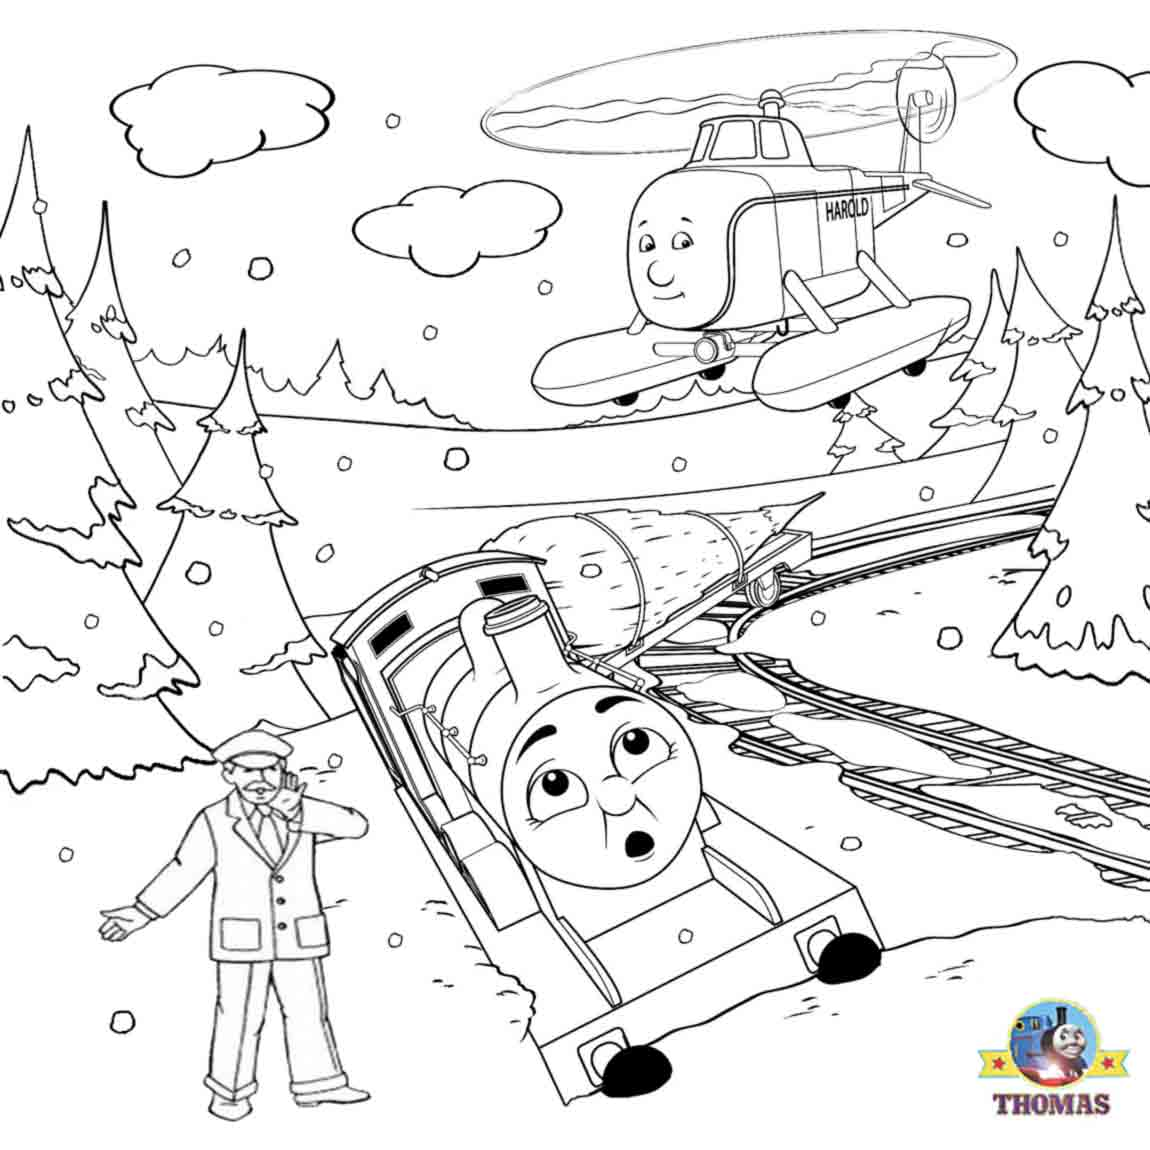 Coloring page one horse open sleigh - Christmas Tree Train James Thomas The Tank Engine Winter Coloring Pages For Kids Indoor Activities